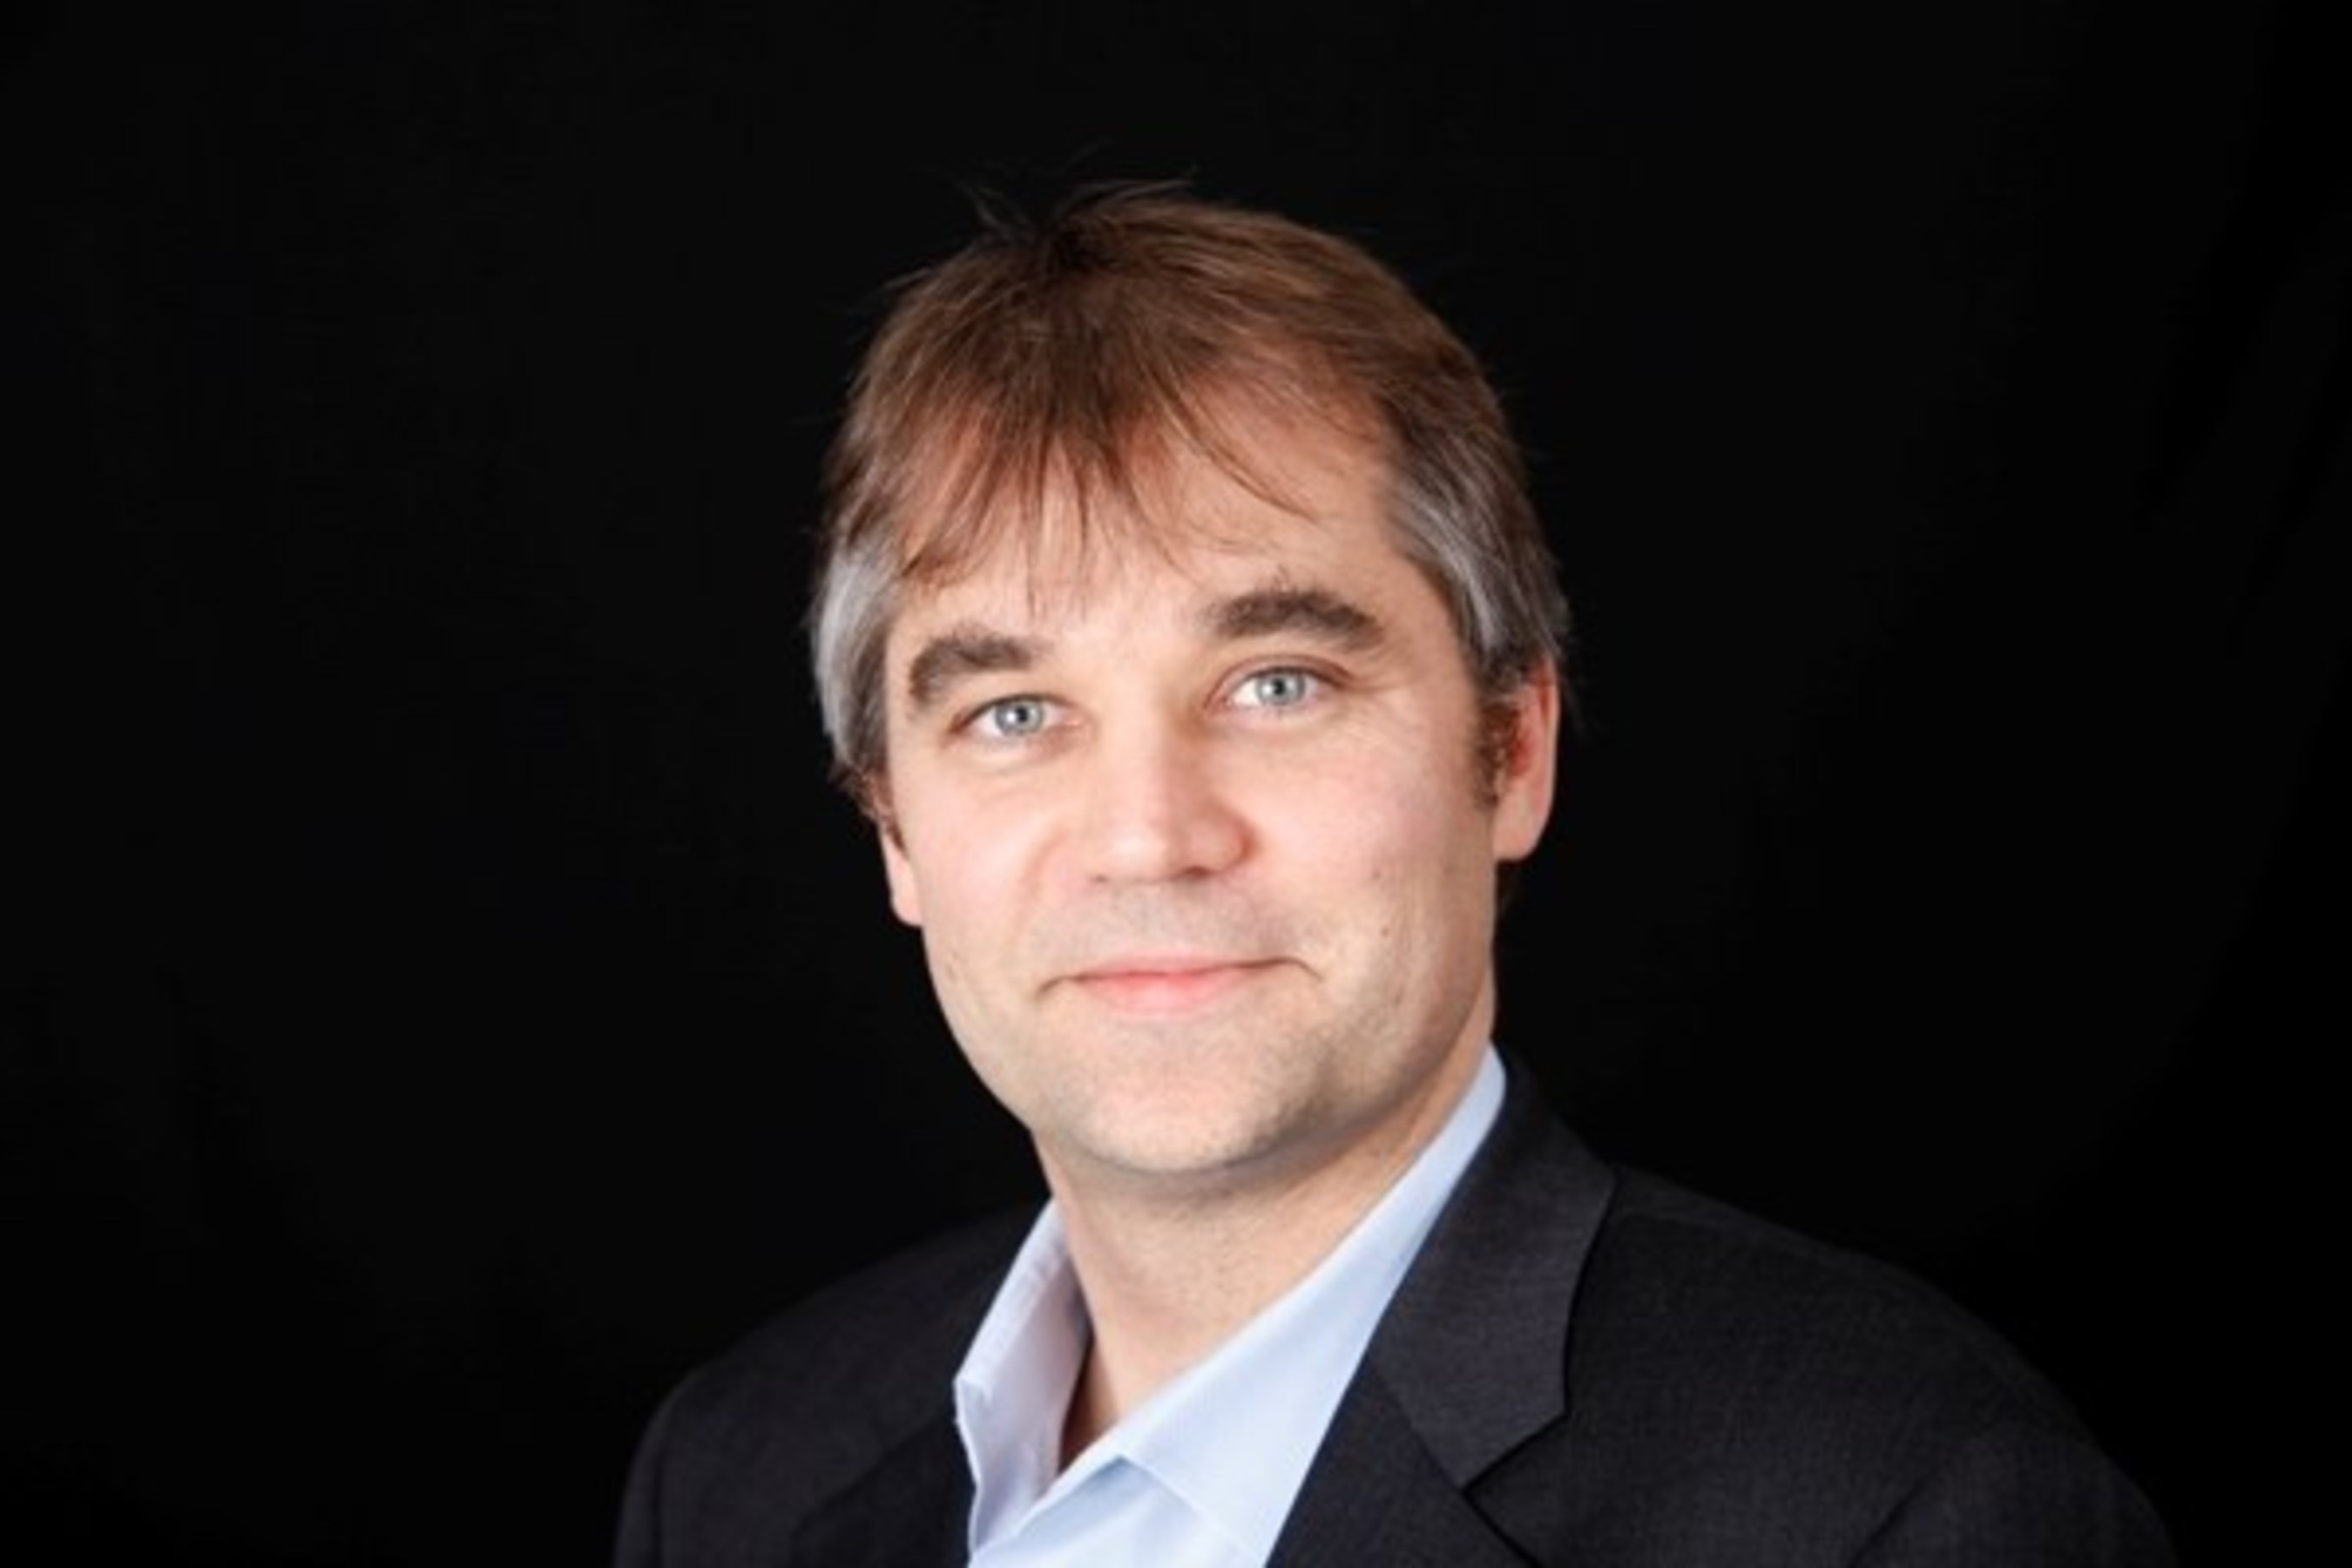 Warner Bros. Chief Digital Officer And Executive Vice President, Thomas Gewecke, To Keynote At 2nd Annual Digital Entertainment World February 10-12, 2015